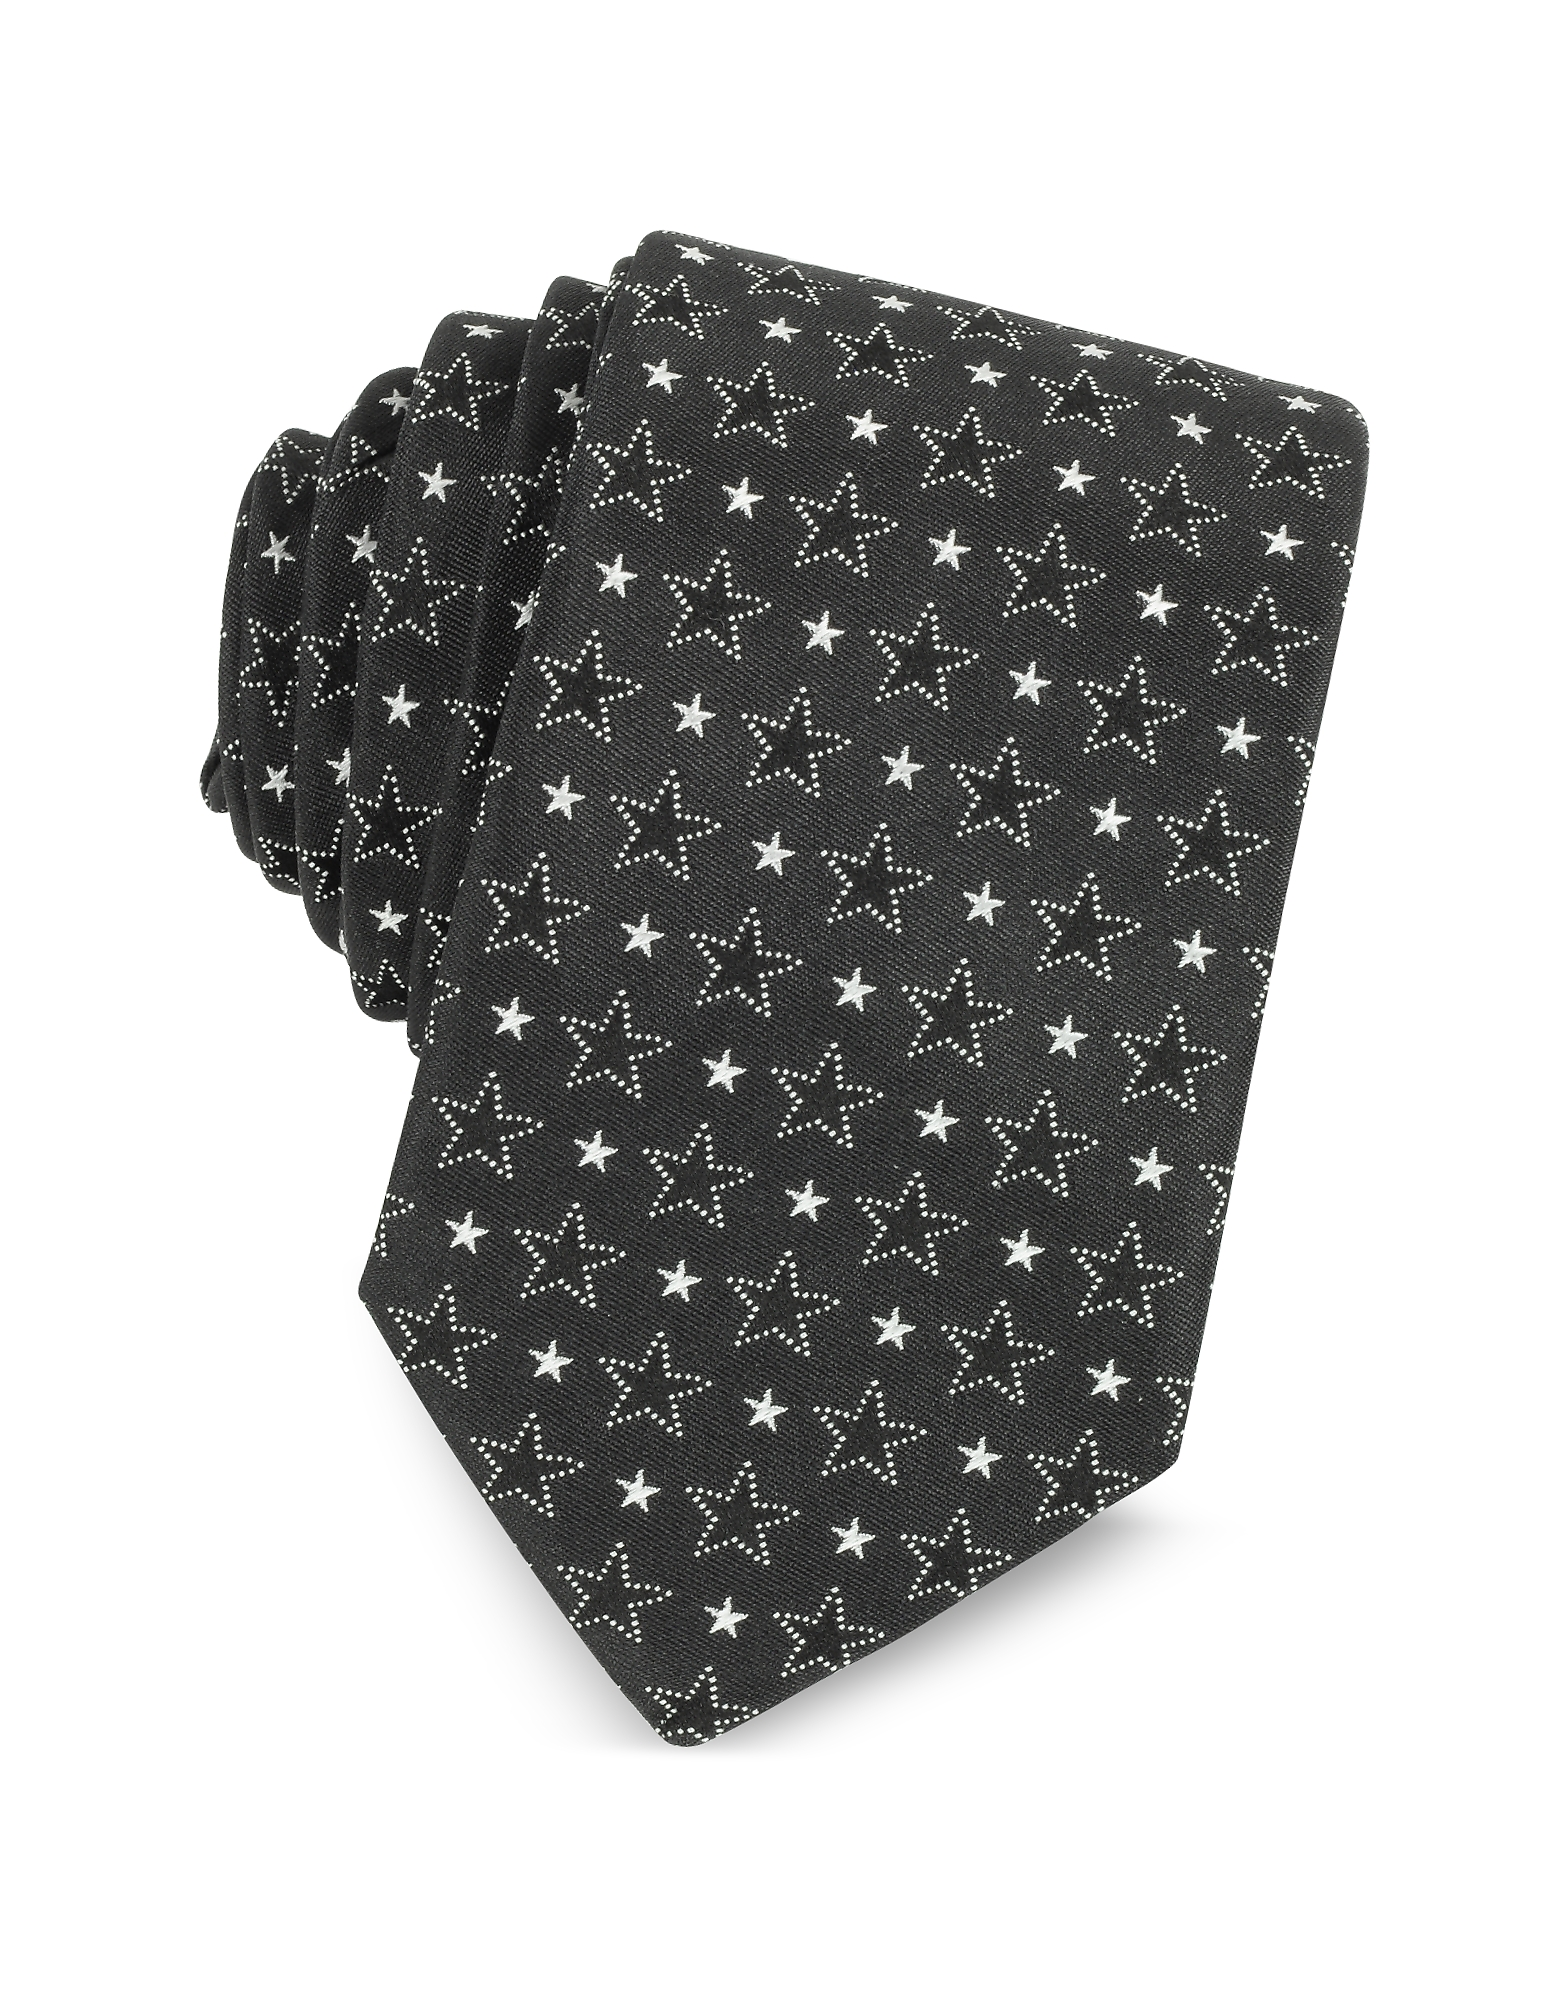 Givenchy Ties, Black and White Multi Stars Printed Silk Narrow Tie